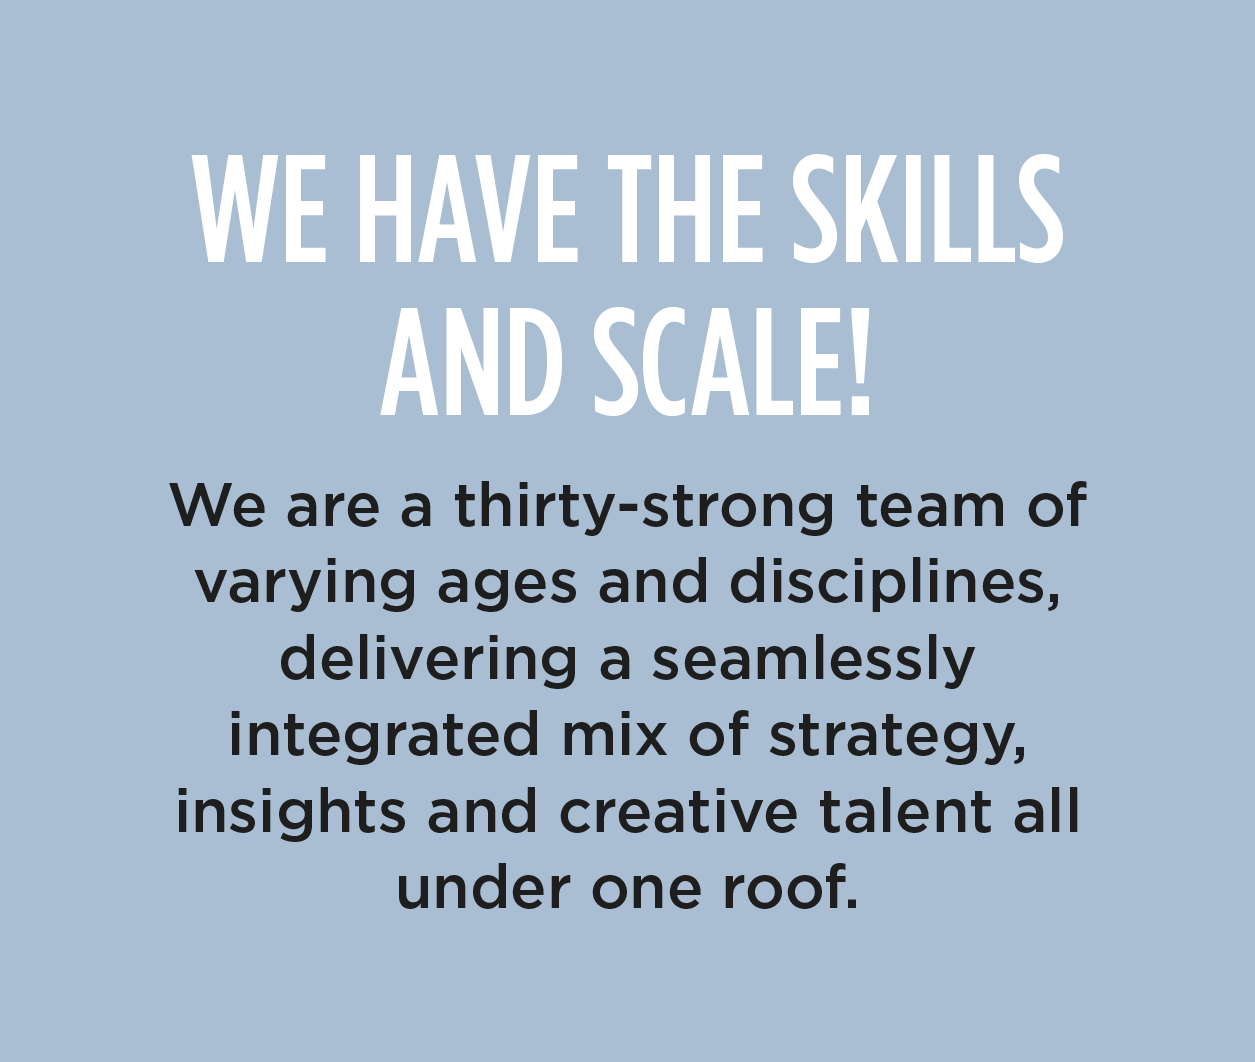 WE HAVE THE SKILLS AND SCALE! - We are a thirty-strong team of varying ages and disciplines, delivering a seamlessly integrated mix of strategy, insights and creative talent all under one roof.